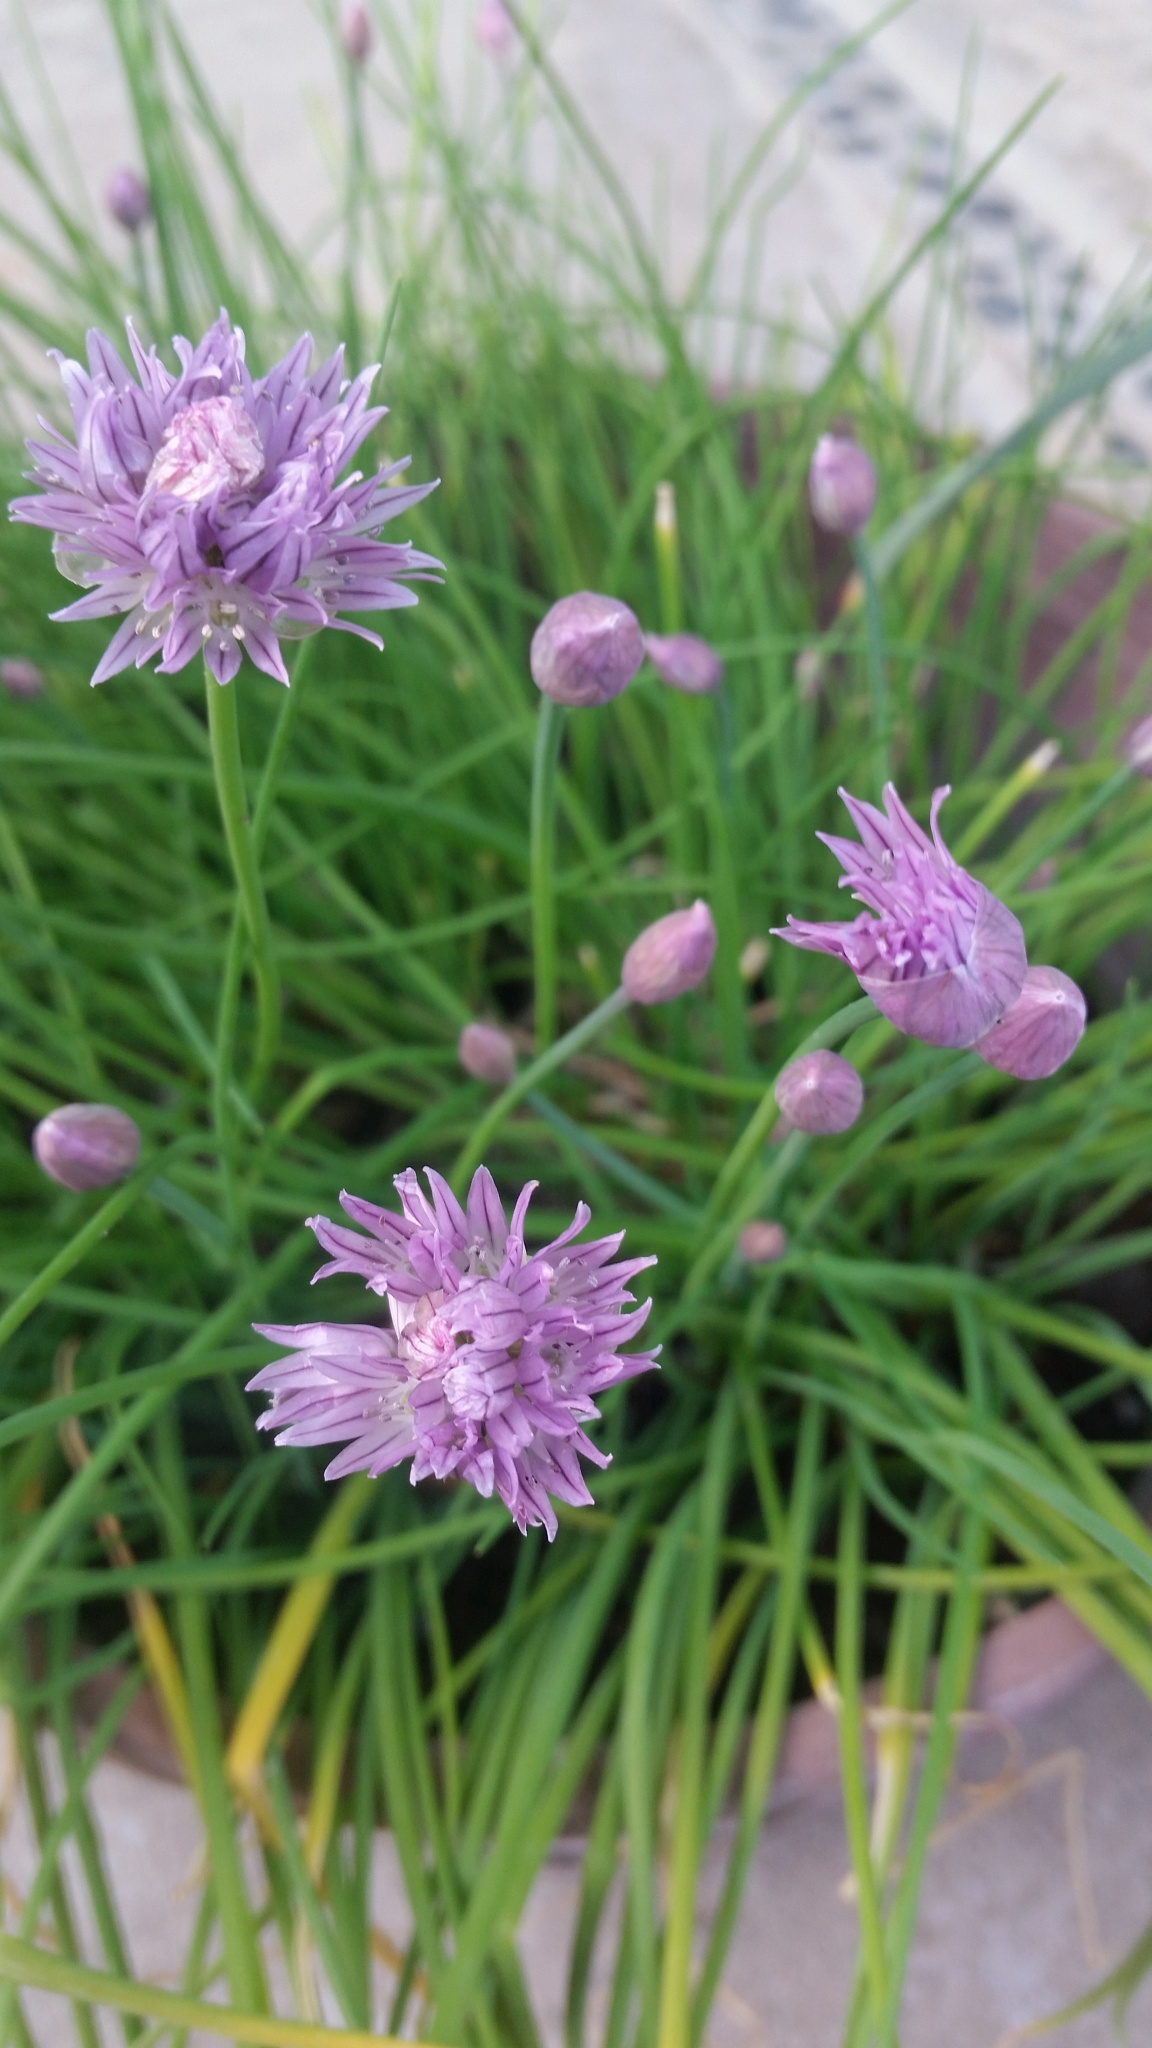 Chives in Bloom by Kendall Leigh